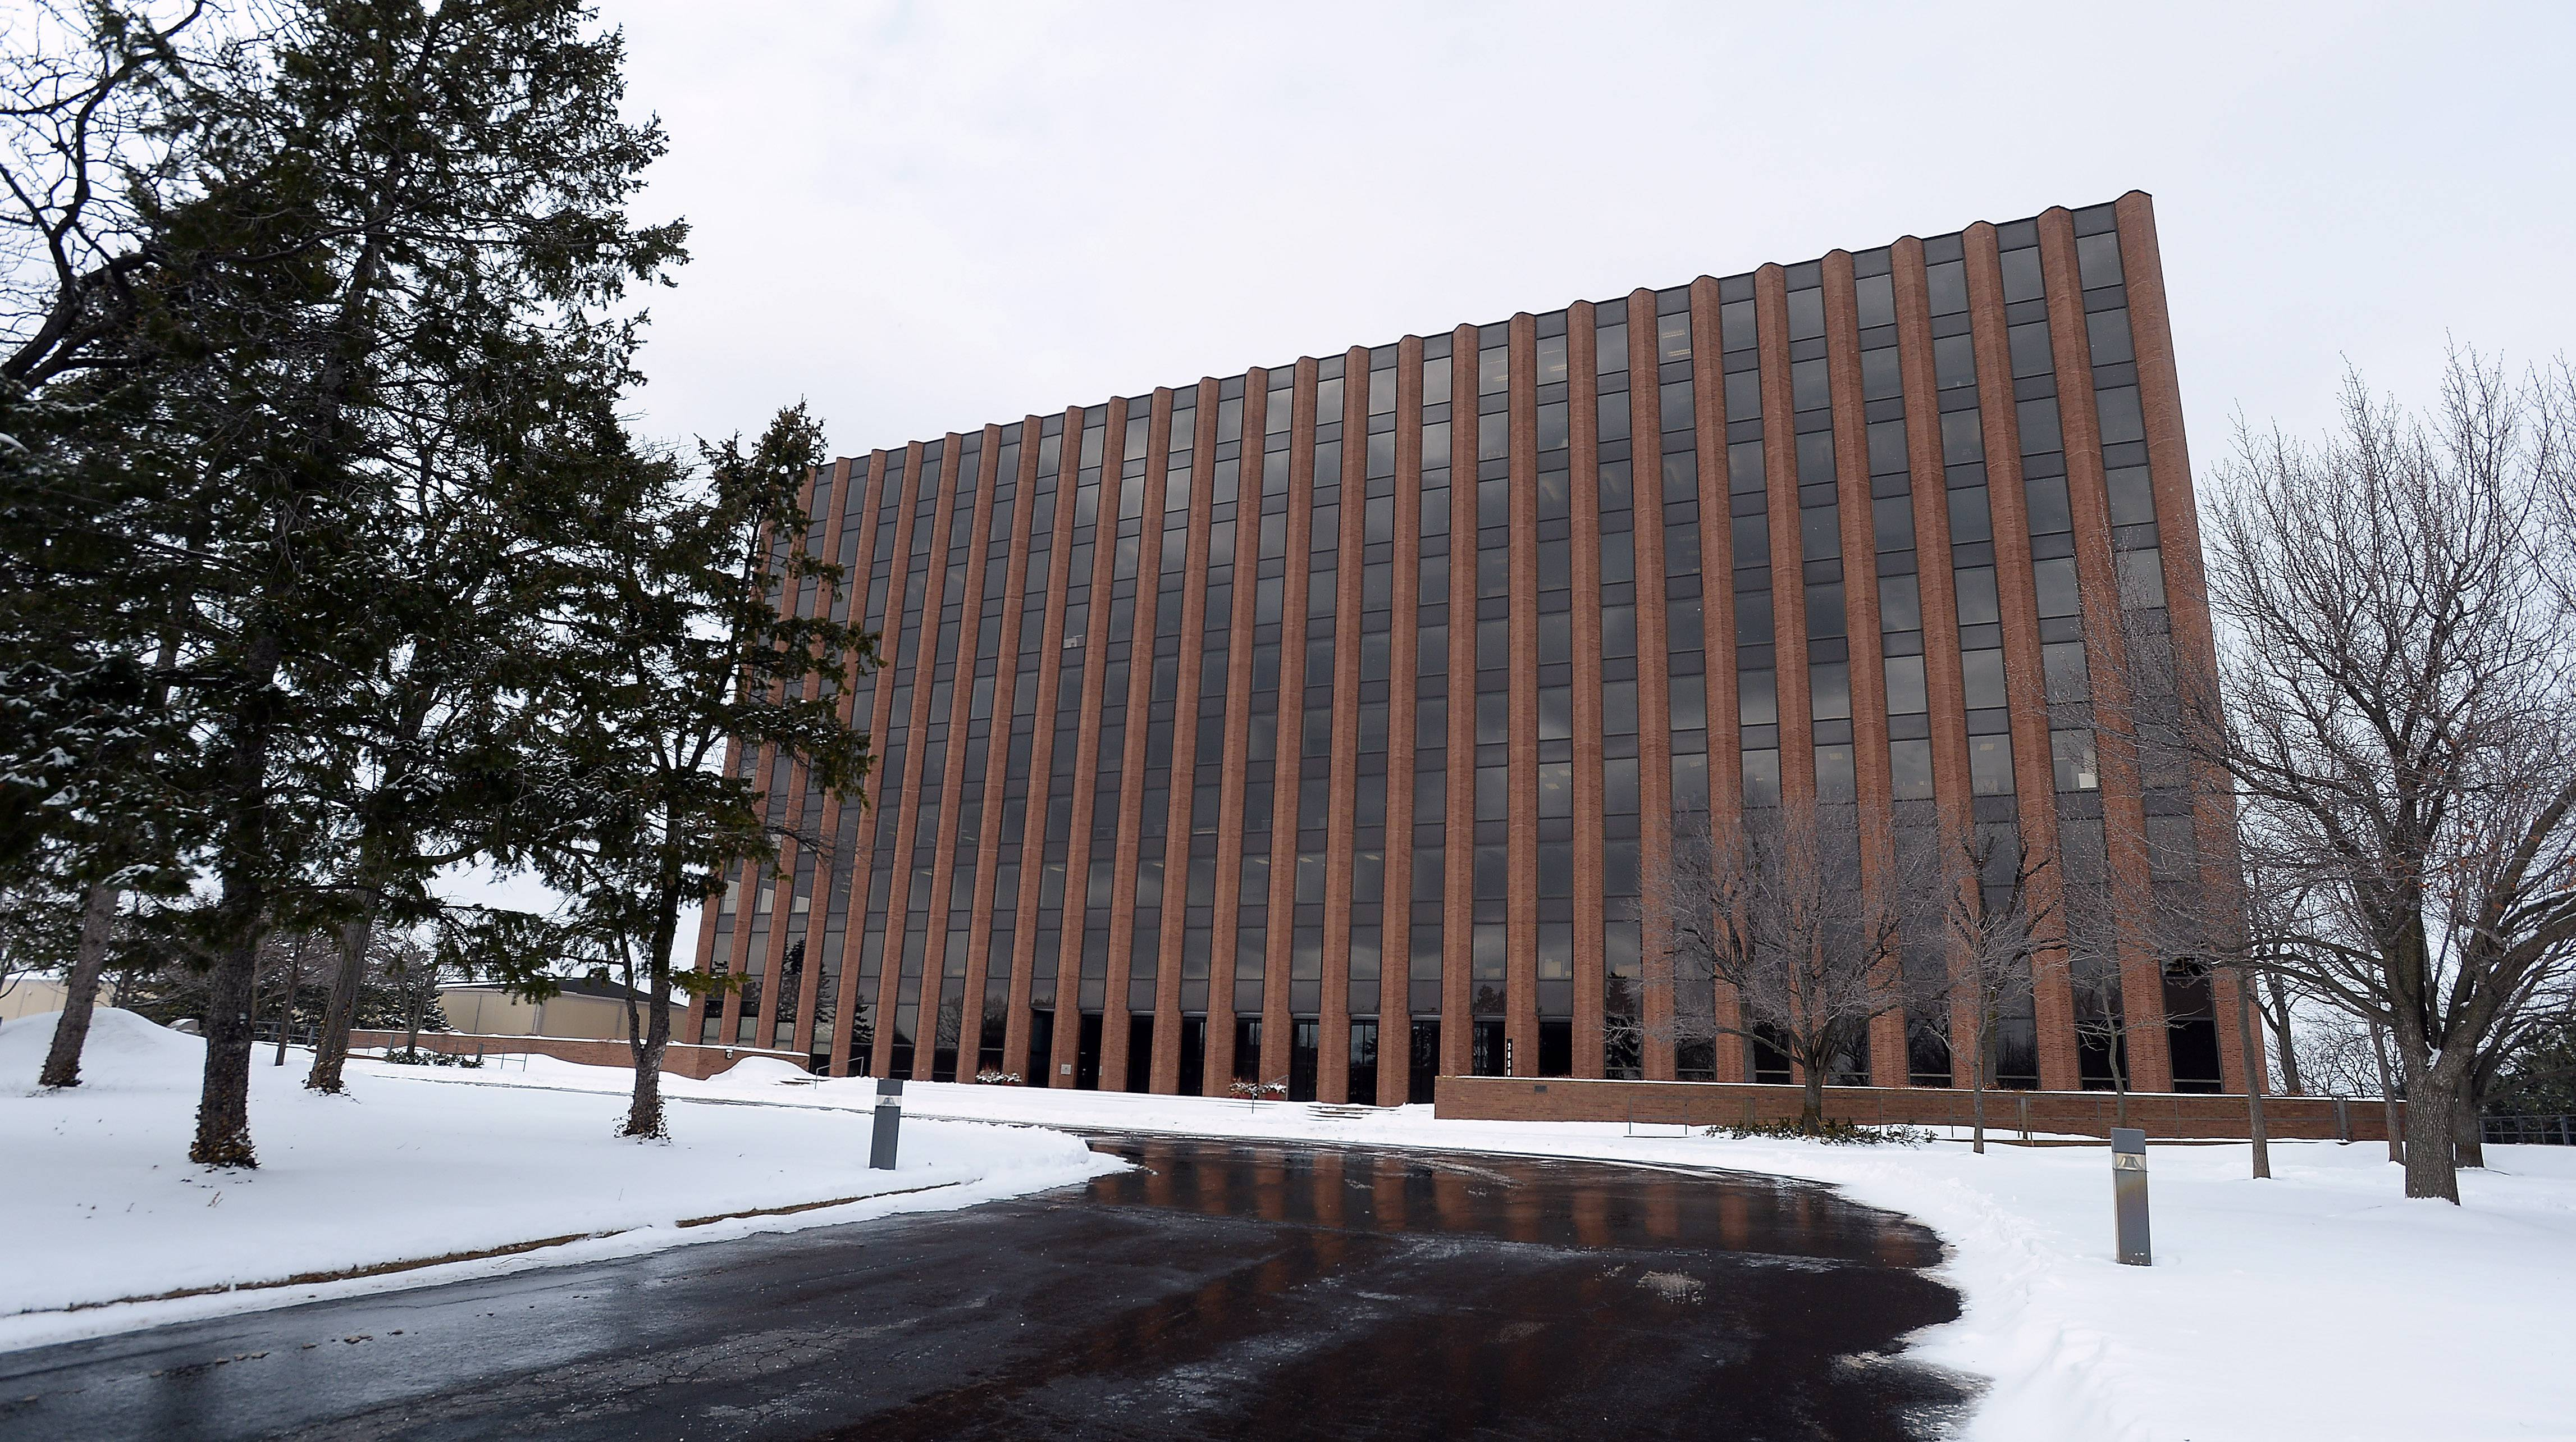 Arthur J. Gallagher, a large international insurance company, will move to this building at 2850 W. Golf Road in the Rolling Meadows Corporate Center, Rolling Meadows officials said.